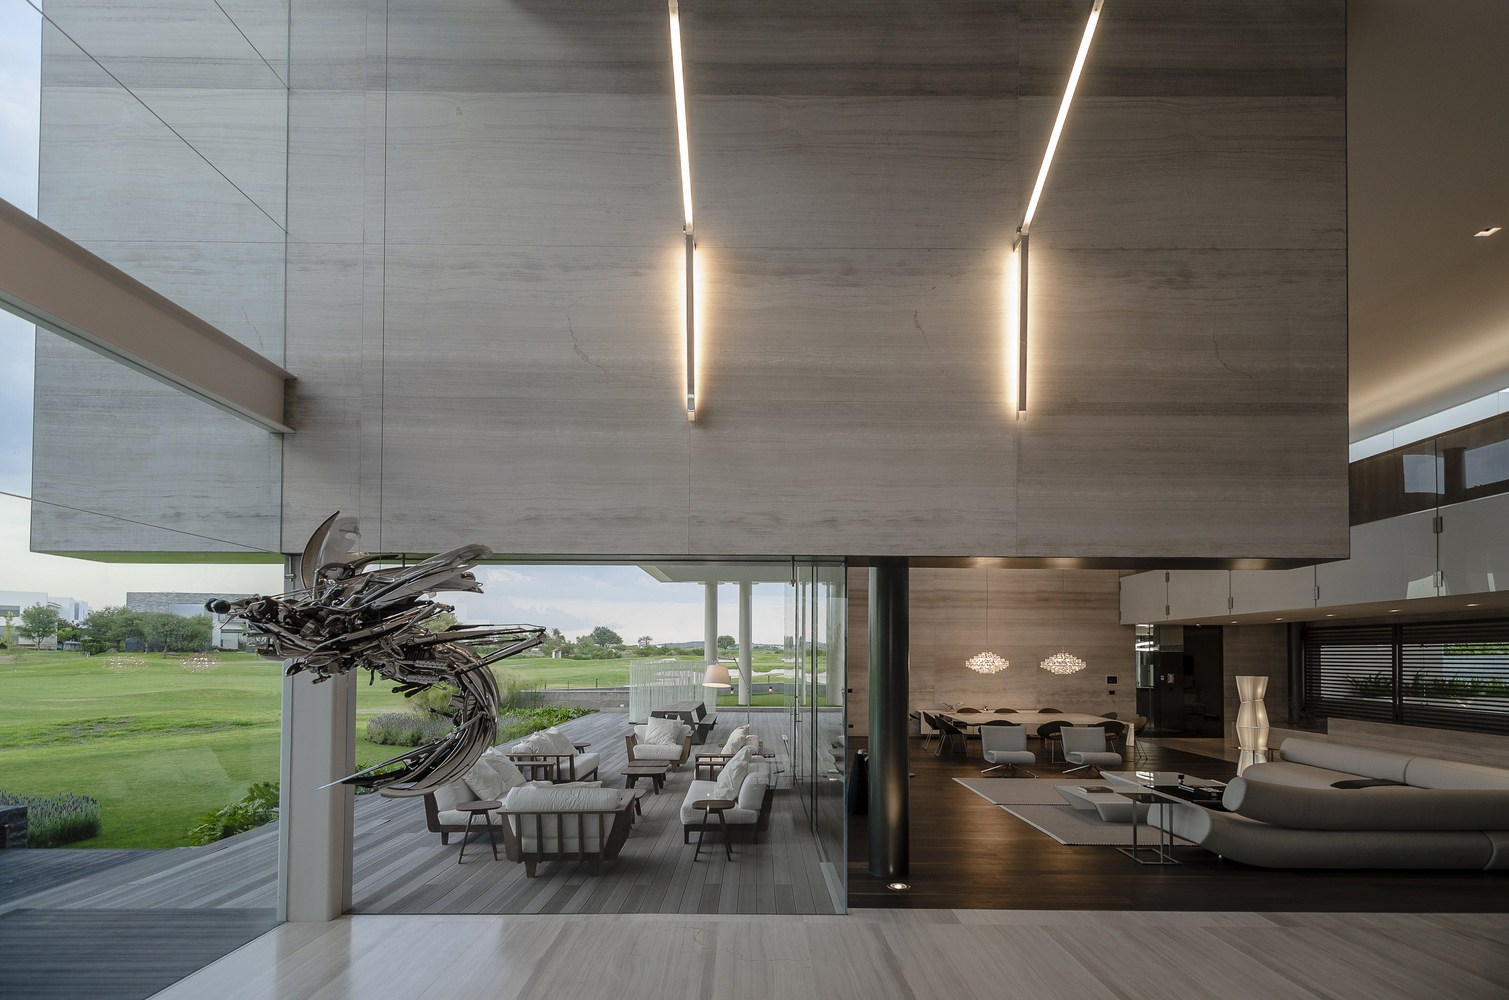 Jrb house by reims architecture in queretaro mexico for Hotel design reims